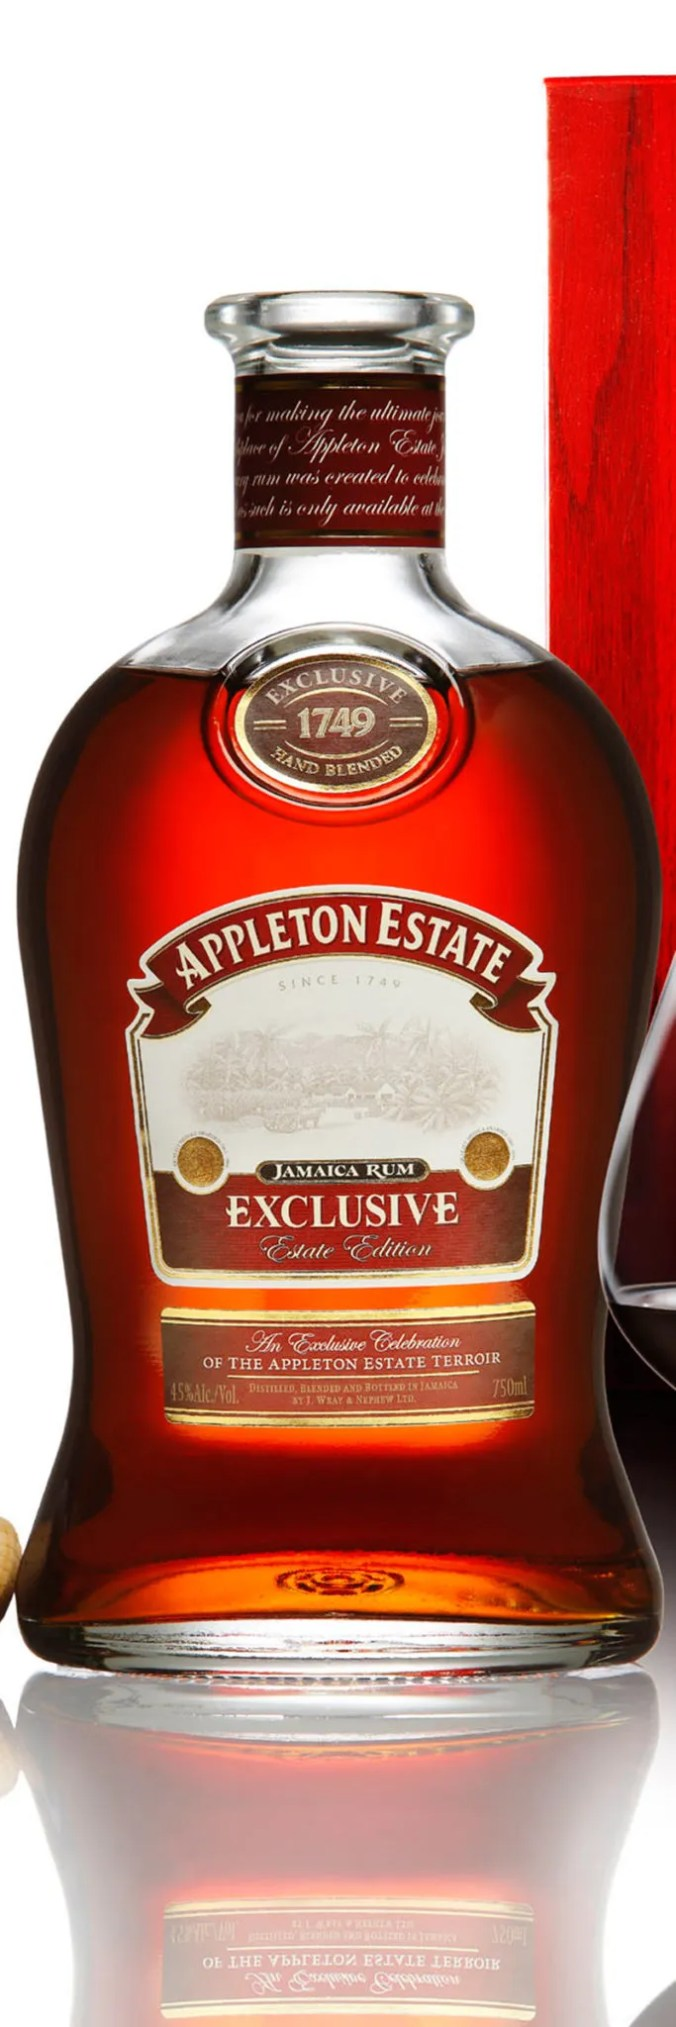 Appleton Estate Exclusive Image